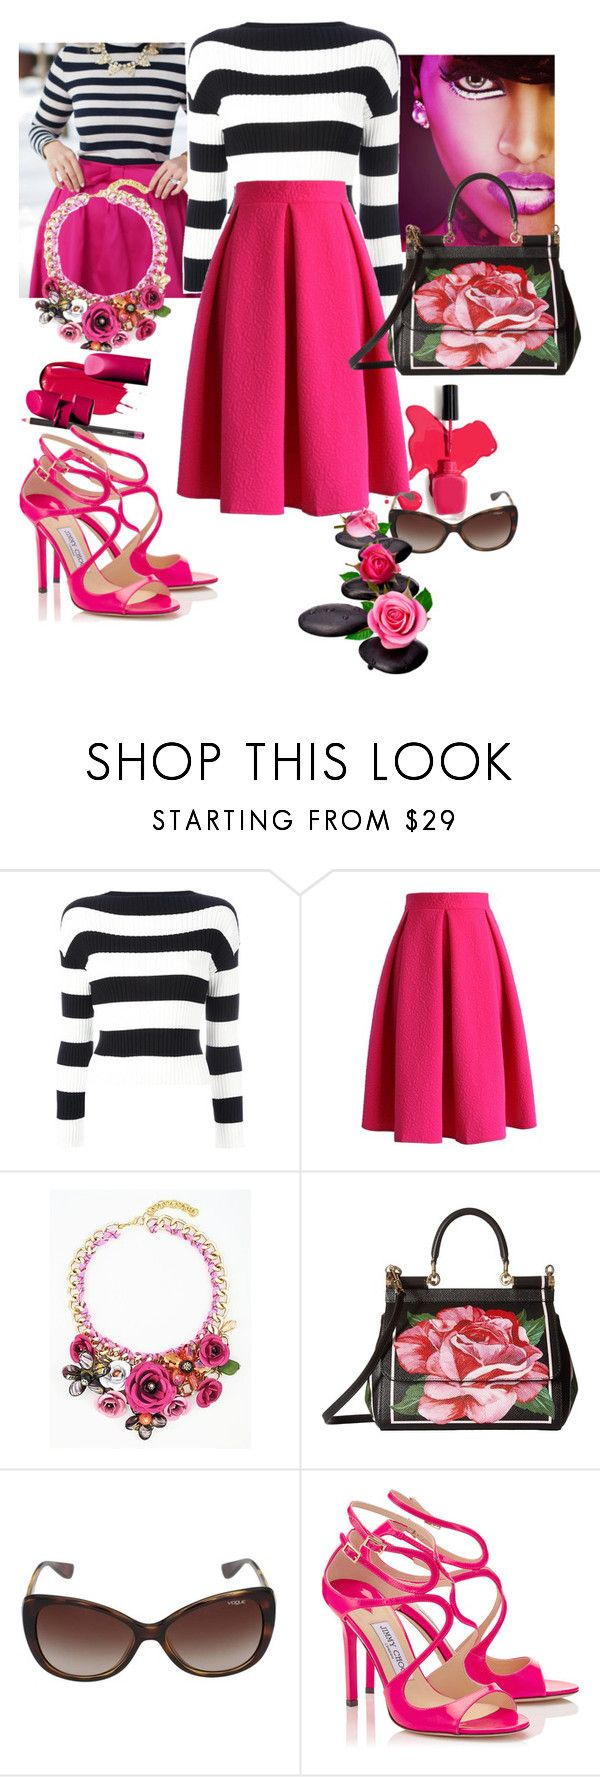 """Untitled #388"" by csfshawn on Polyvore featuring Boutique Moschino, Chicwish, Dolce&Gabbana and Vogue Eyewear"